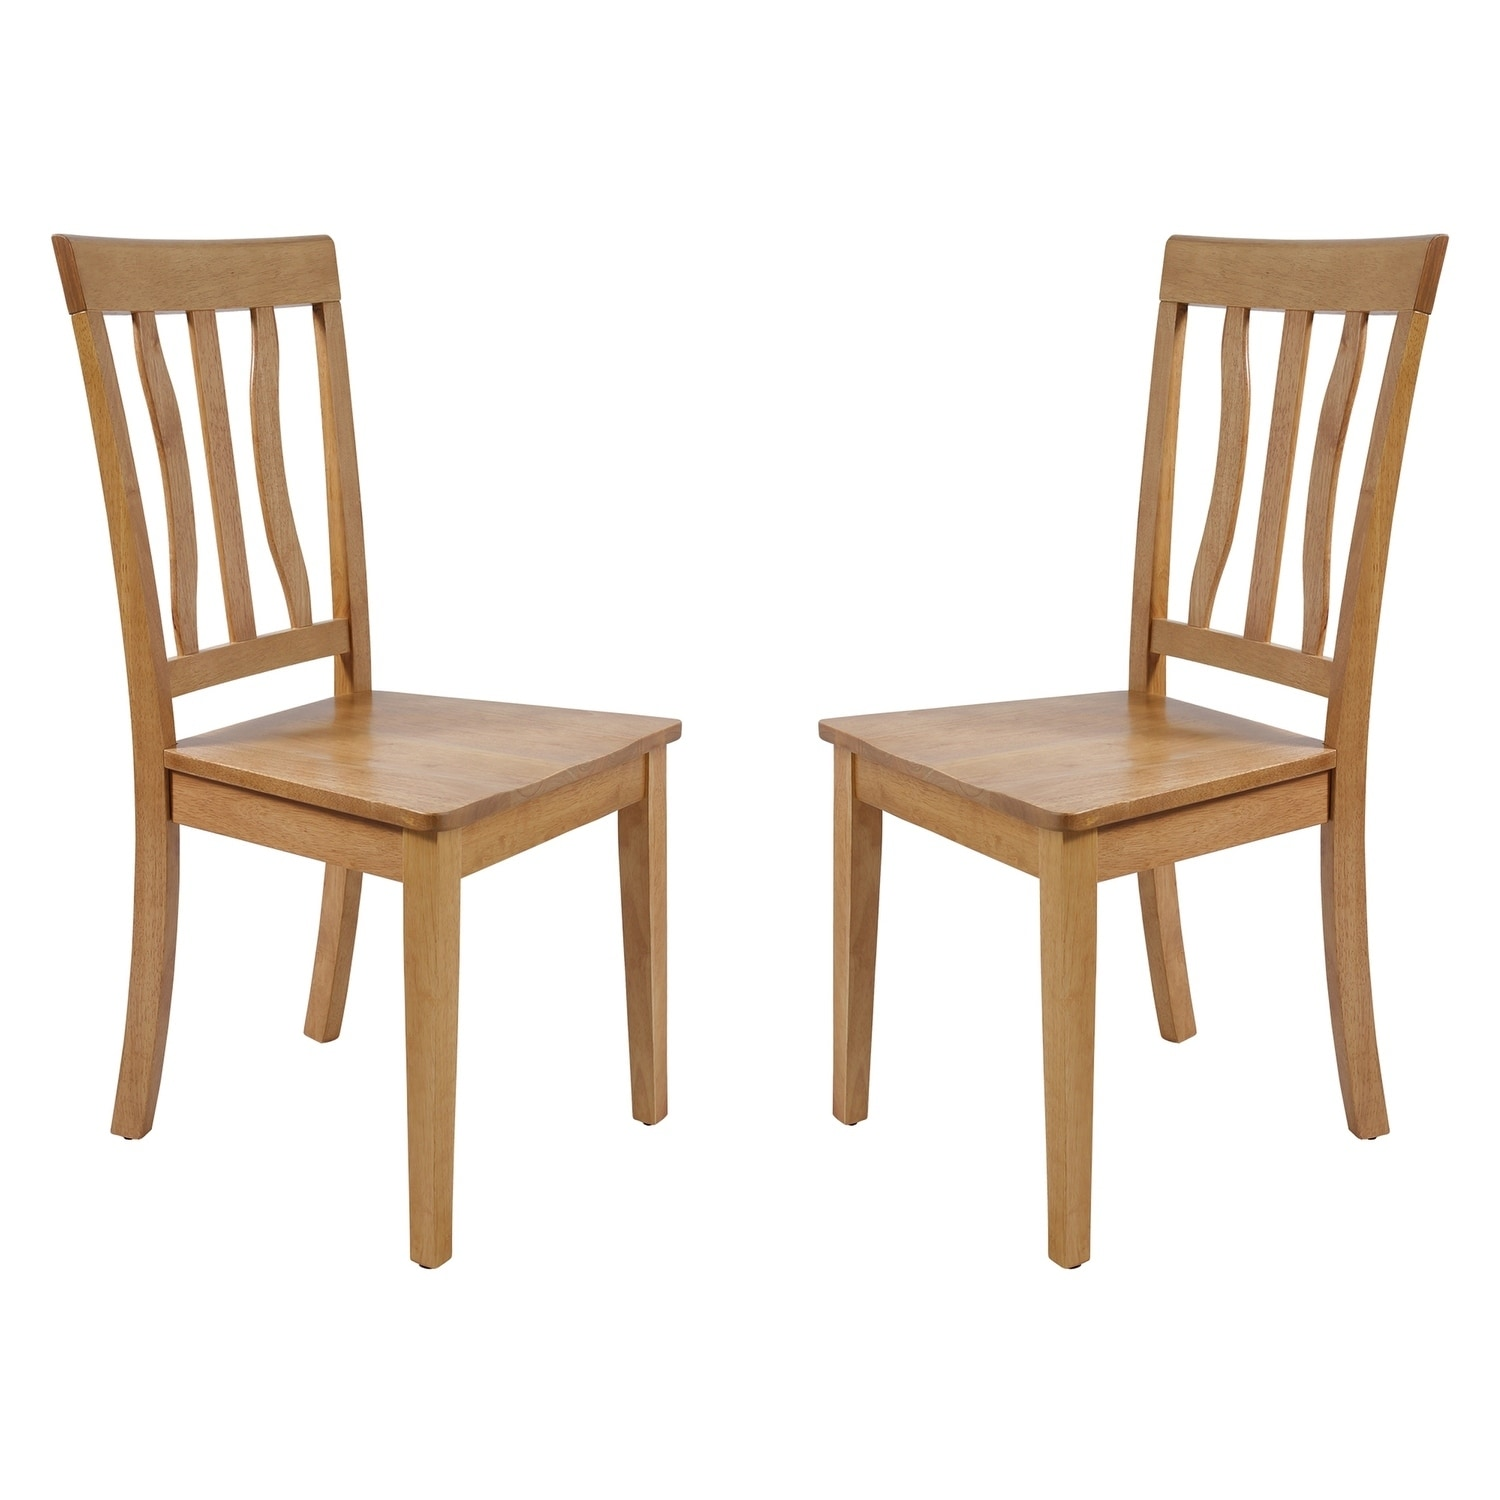 Shop Solid Wood Sturdy Dining Chair Modern Kitchen Chair Oak Set Of 2 Overstock 17853713